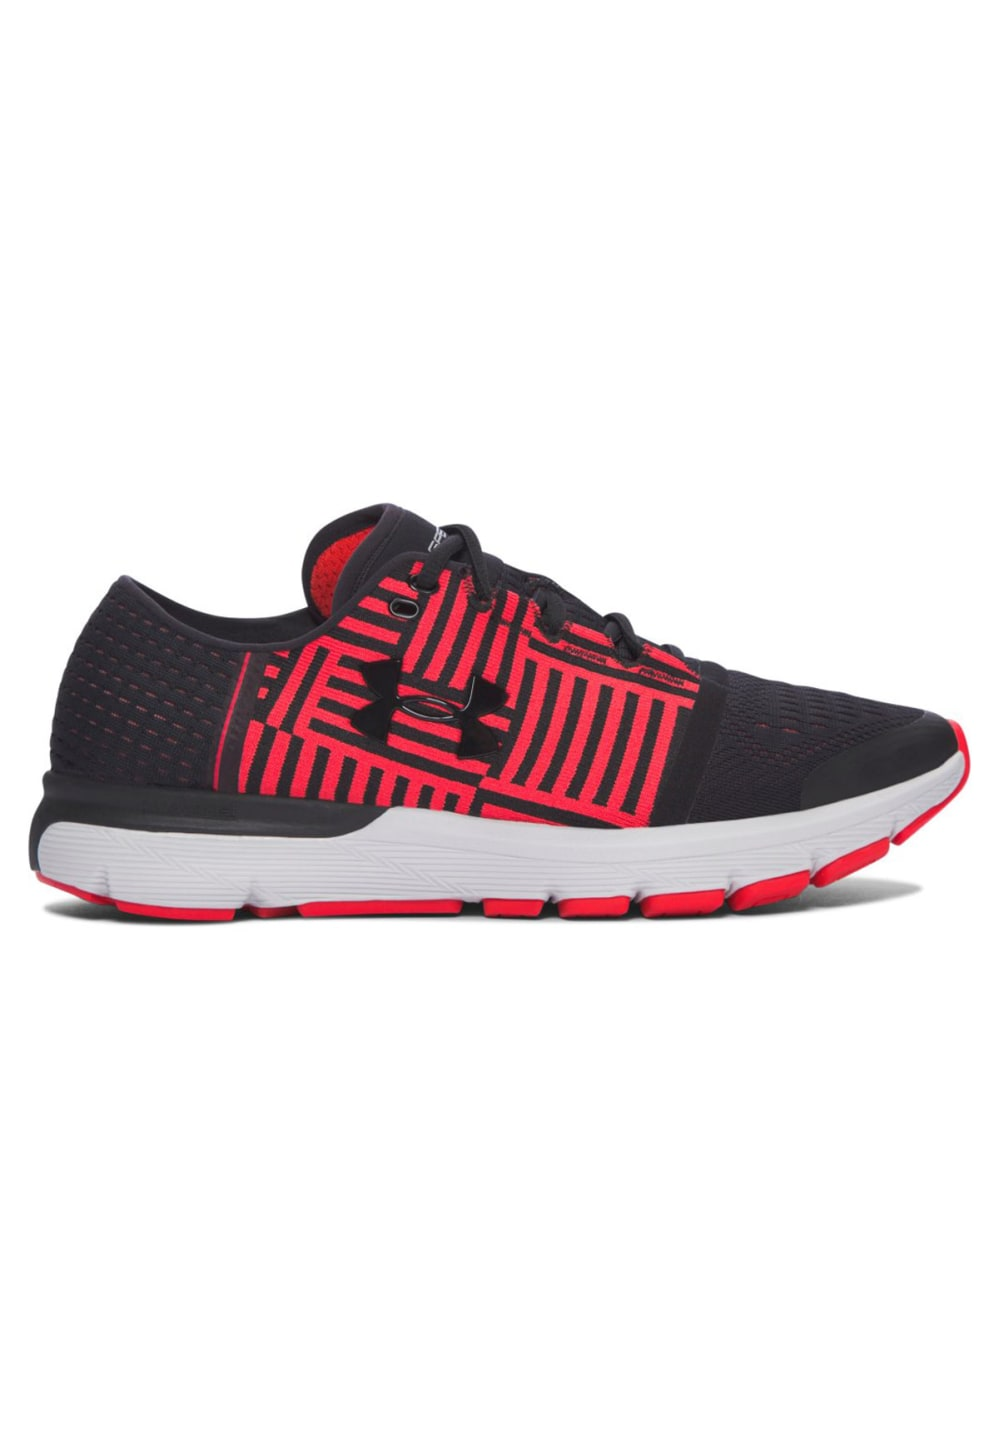 Under Armour Speedform Gemini 3 Hommes Chaussures running